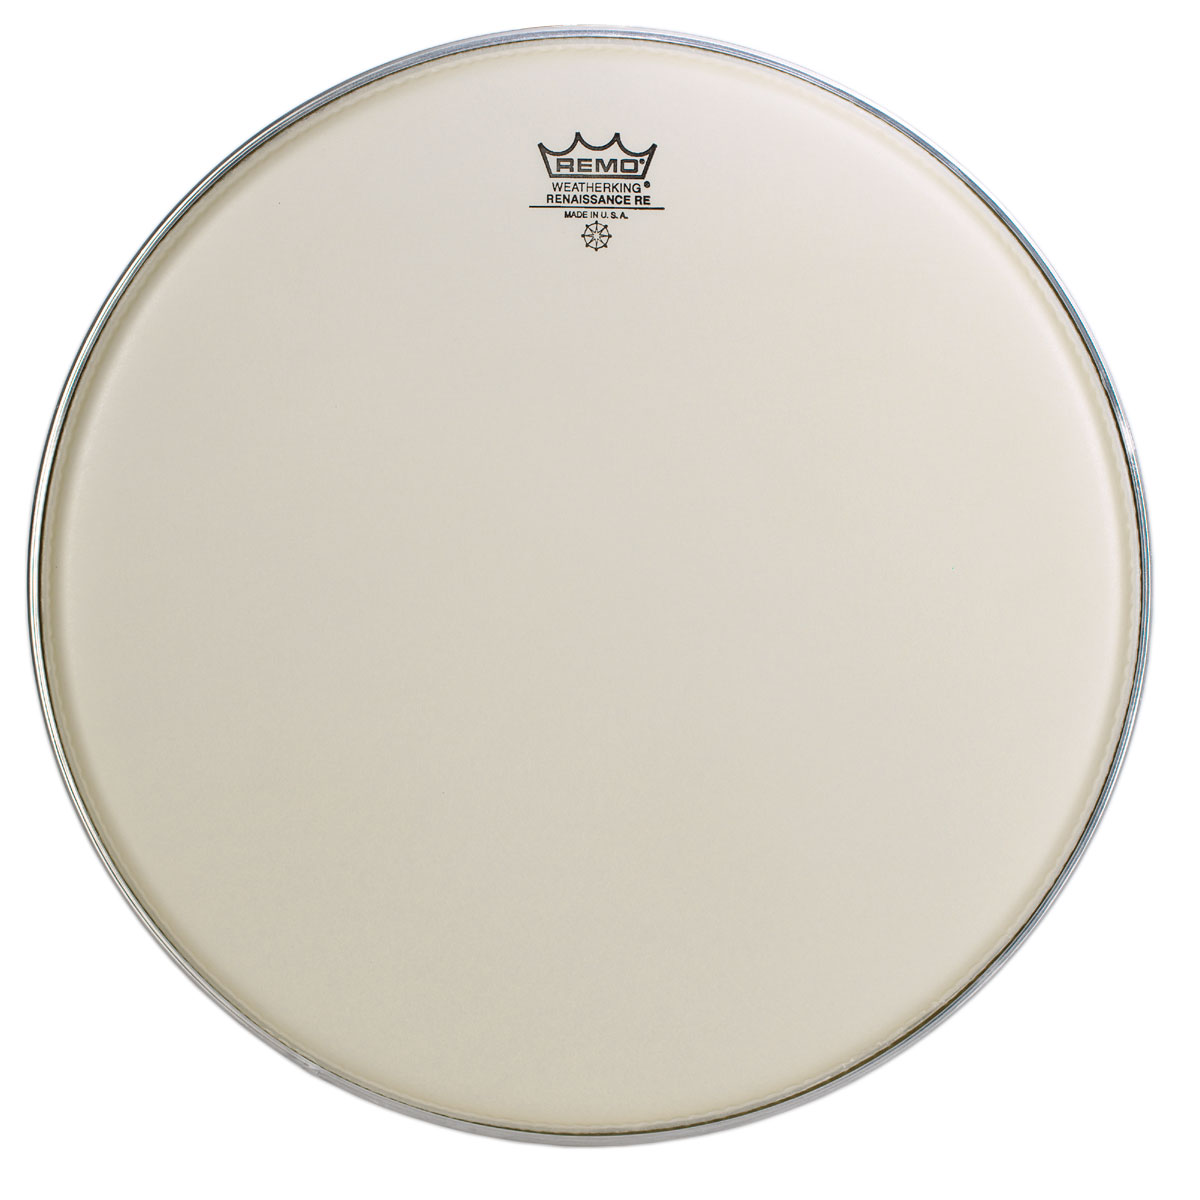 "Remo 14"" Emperor Renaissance Crimplock Marching Tenor Drum Head"